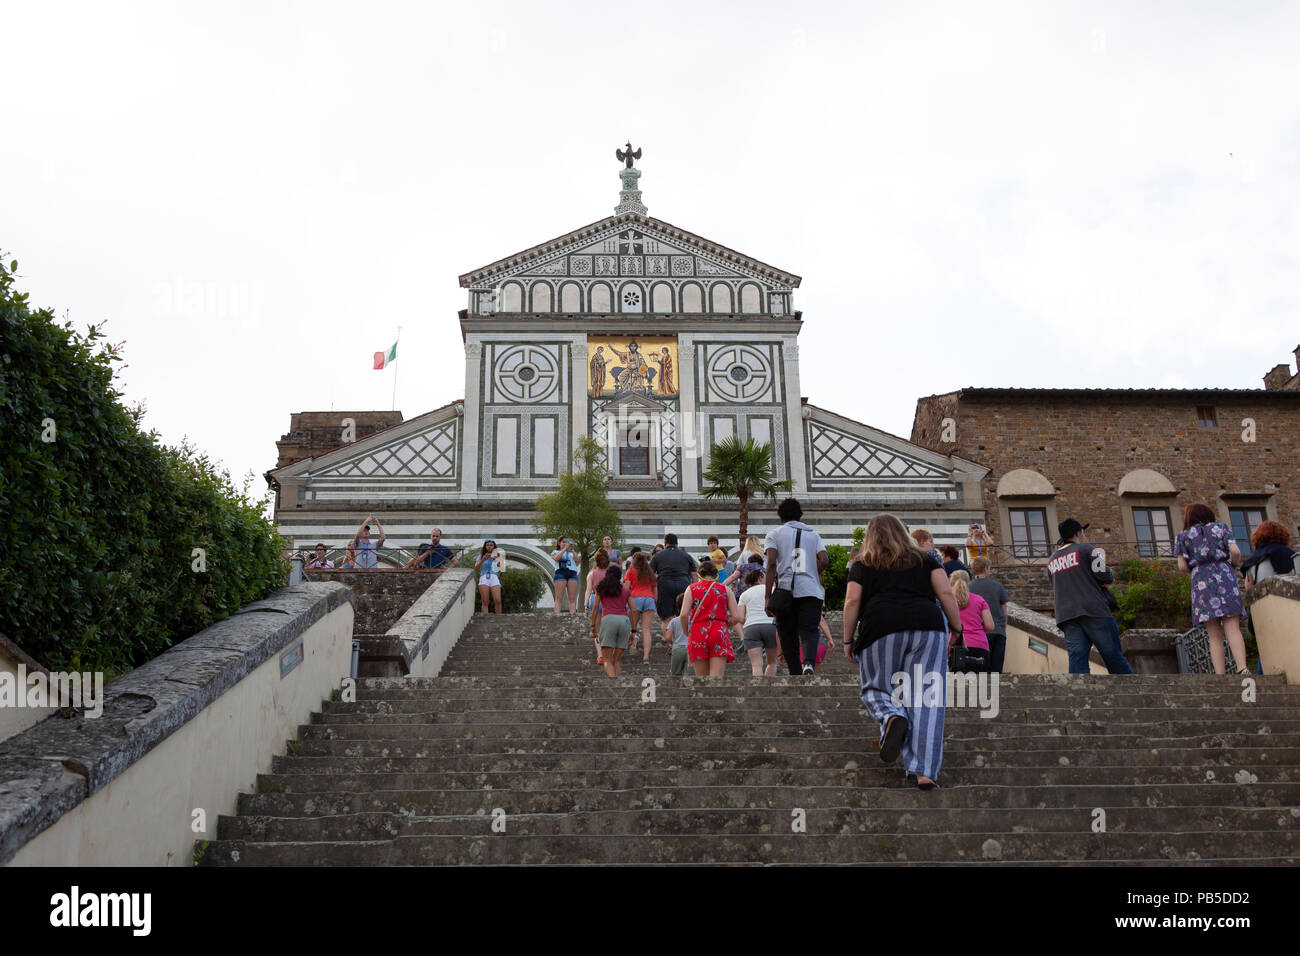 The San Miniato al Monte church (Florence - Italy). Its frontage - dating back century XII th - is of an exceptional stylishness. - Stock Image